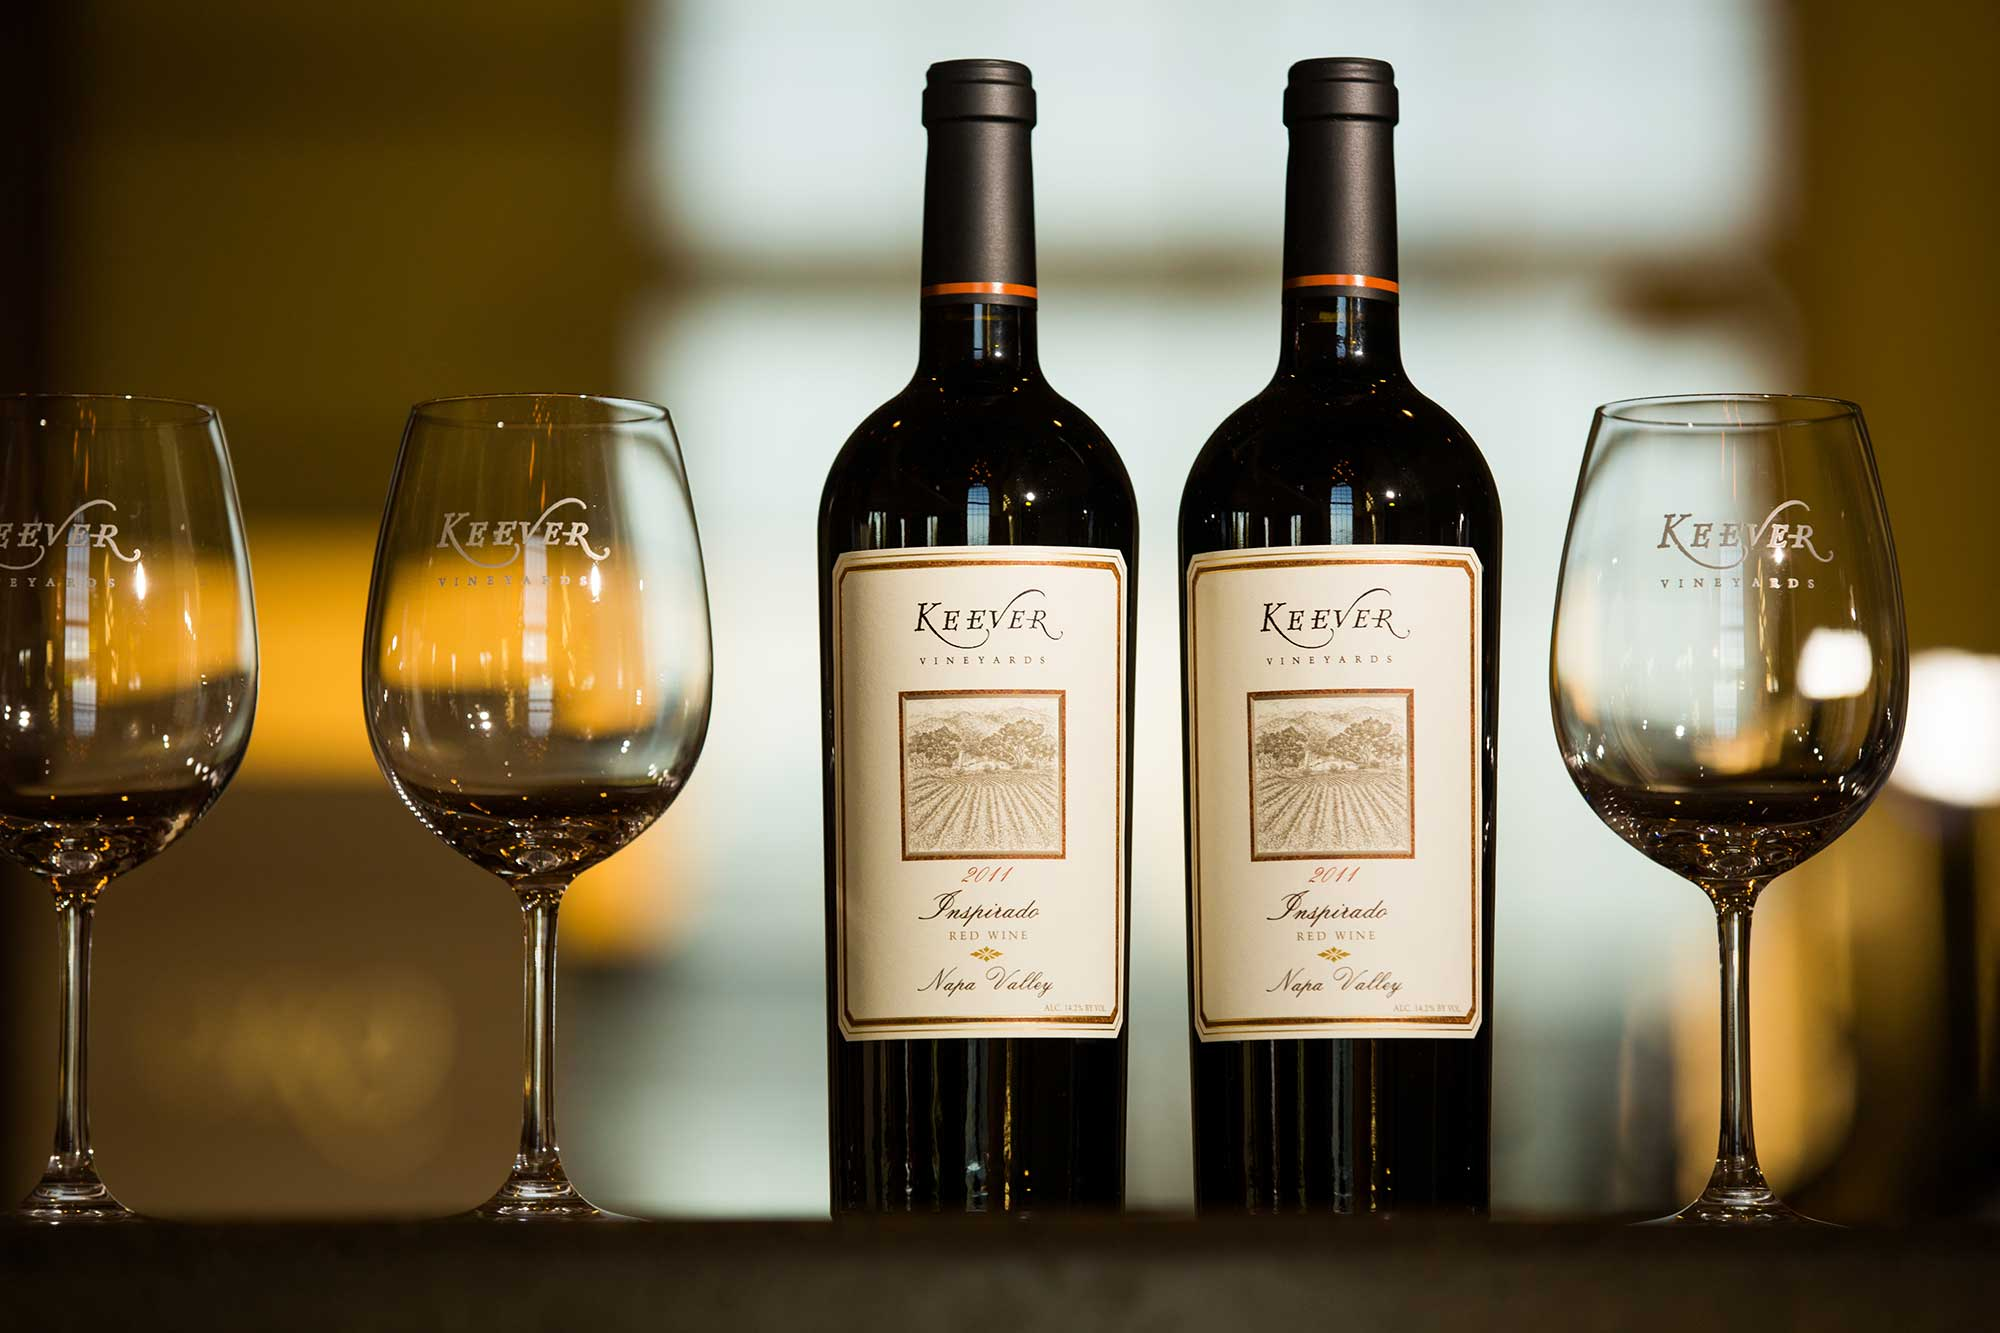 Keever Vineyards bottles and glasses in the winery tasting room in Yountville, California